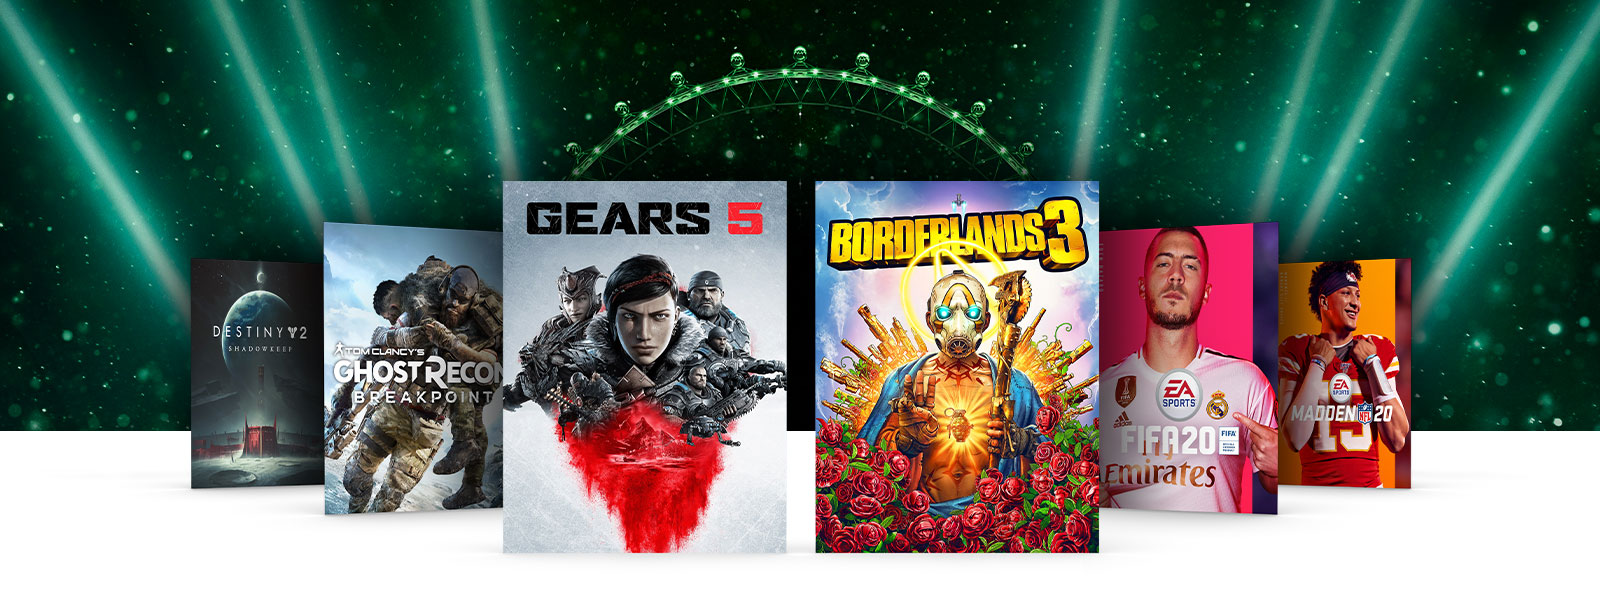 Box art of Xbox One titles on sale float in front of the London Eye, glowing in Xbox green. Destiny 2 Shadowkeep, Ghost Recon Breakpoint, Gears 5, Borderlands 3, FIFA 20, and Madden NFL 20.